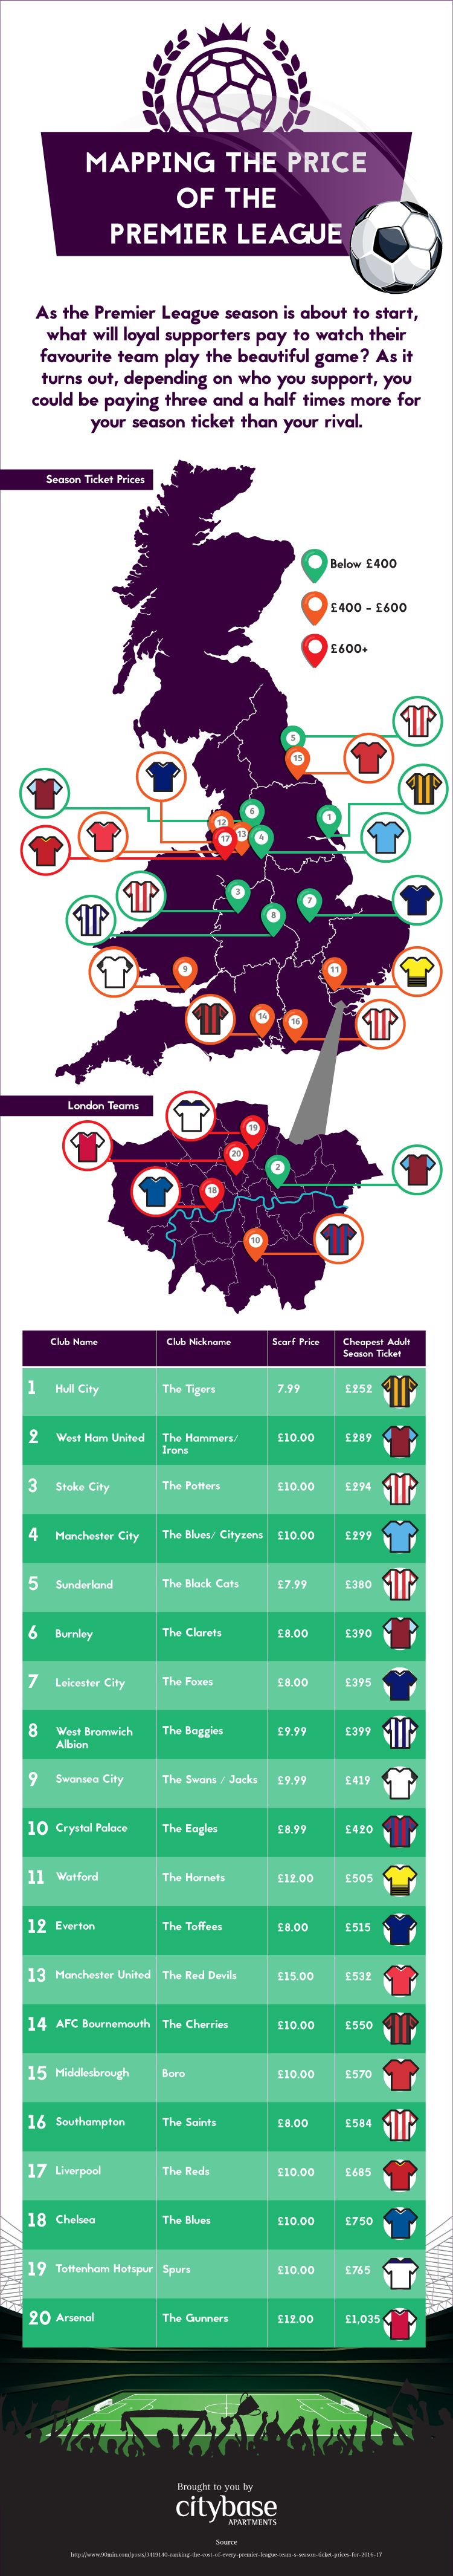 Mapping the Price of the Premier League 2016/17